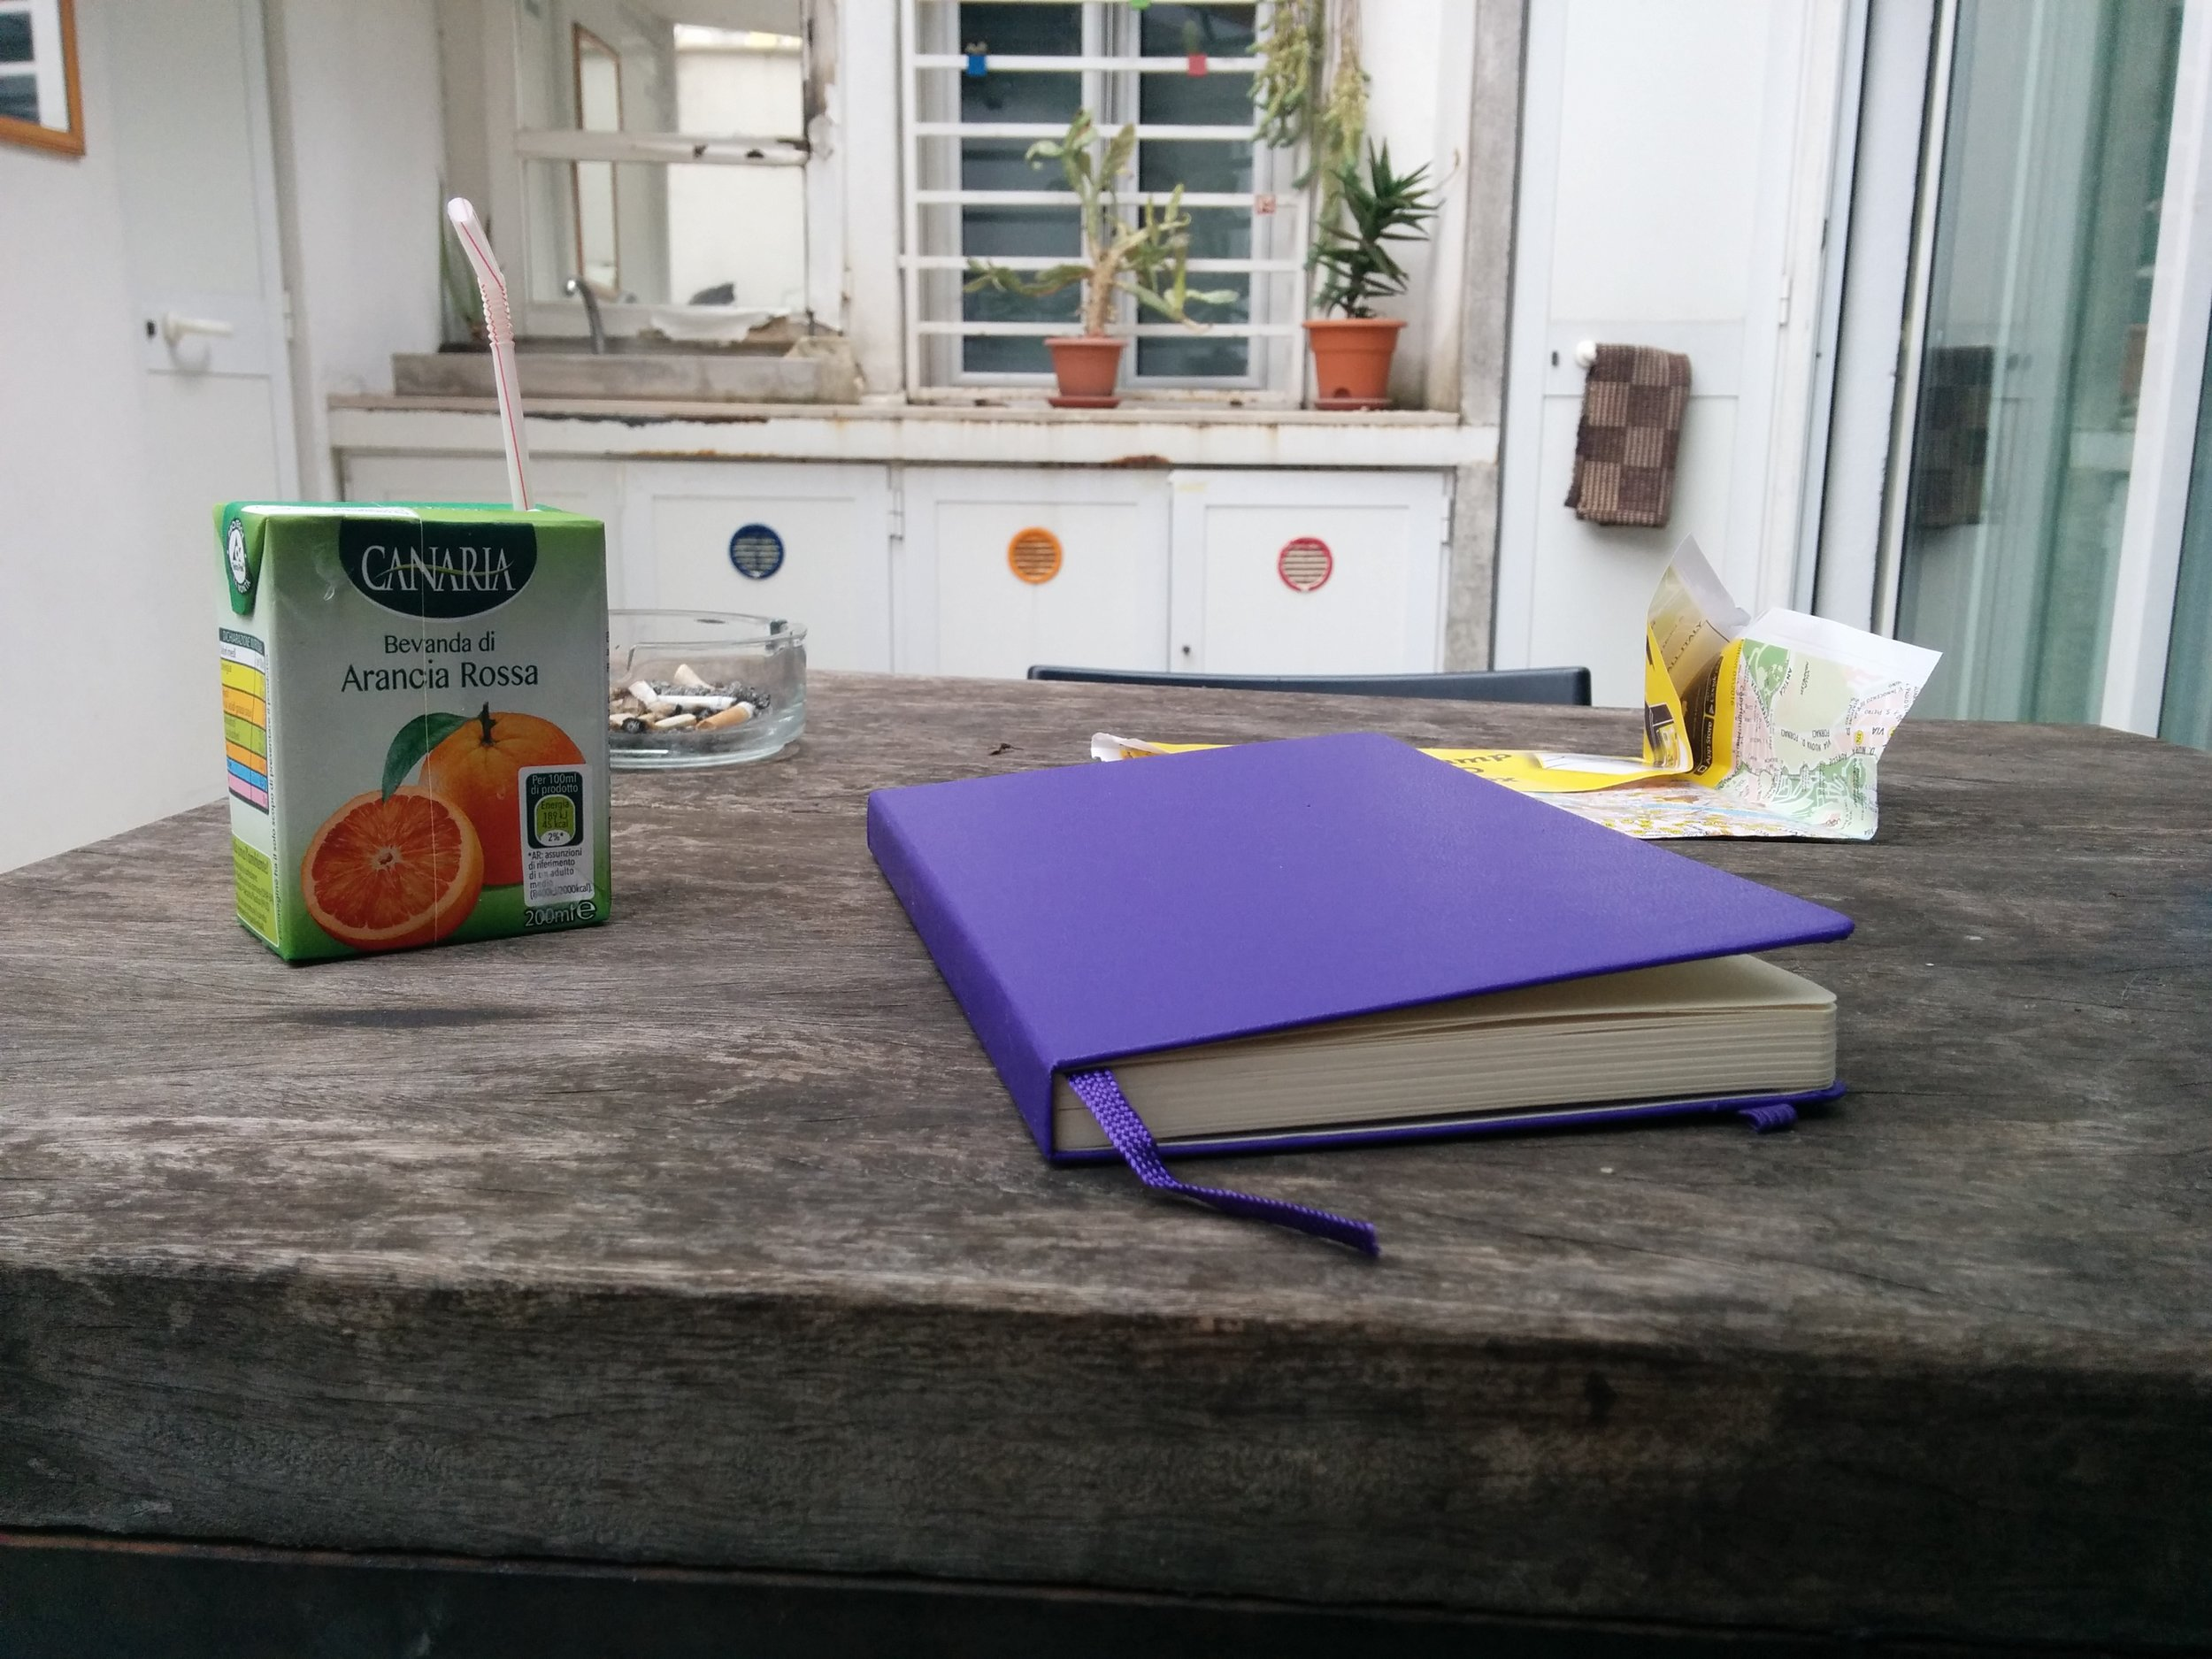 I enjoyed journaling everyday. Here is my set-up (not my cigarettes) at our airbnb.